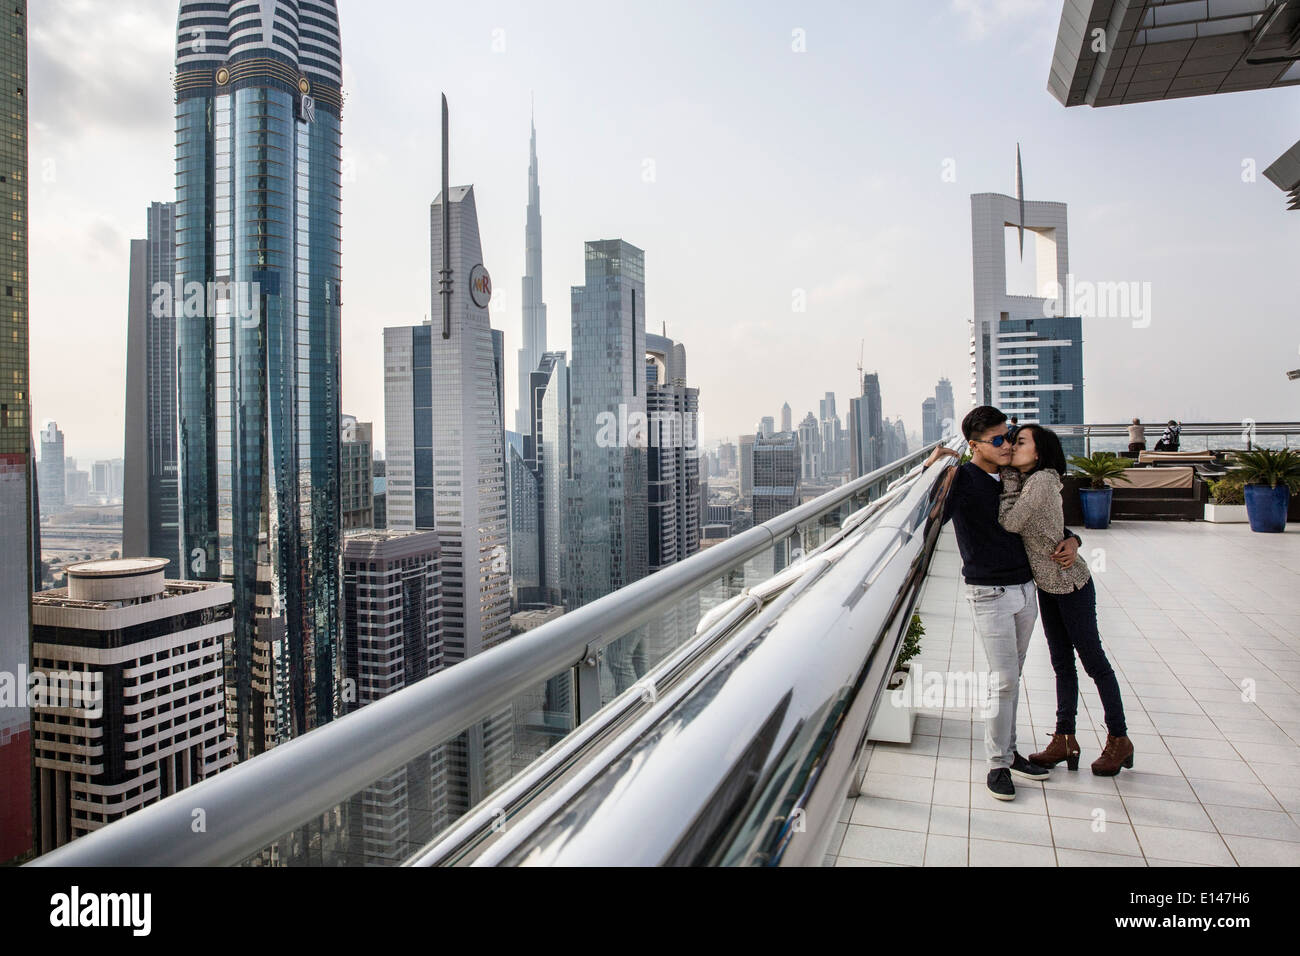 United Arab Emirates, Dubai, financial city center with Burj Khalifa, Asian couple kissing un rooftop of Sheraton Hotel - Stock Image